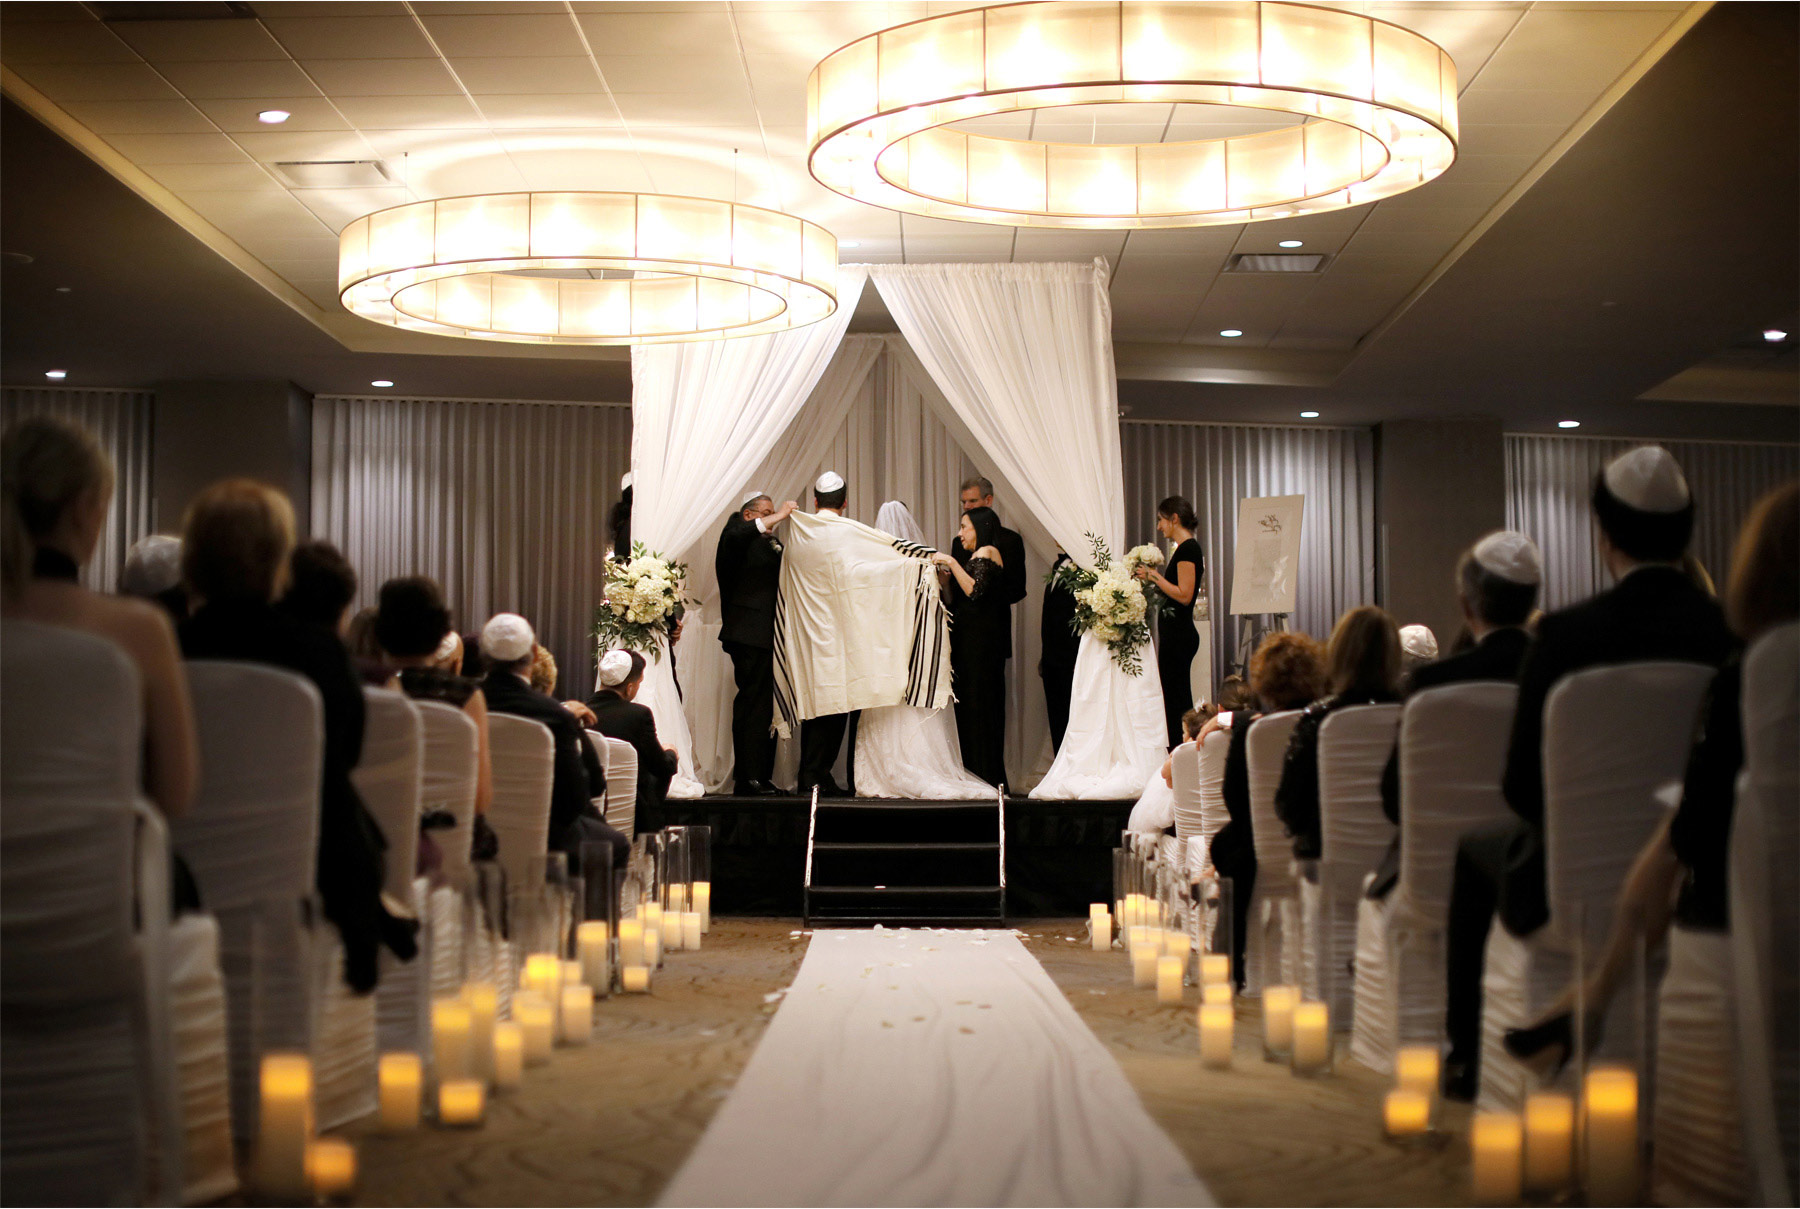 12-Minneapolis-Minnesota-Wedding-Photographer-by-Andrew-Vick-Photography-Winter-Hyatt-Regency-Hotel-Ceremony-Bride-Groom-Mother-Father-Parents-Yarmulke-Chuppah-Amy-and-Jordan.jpg